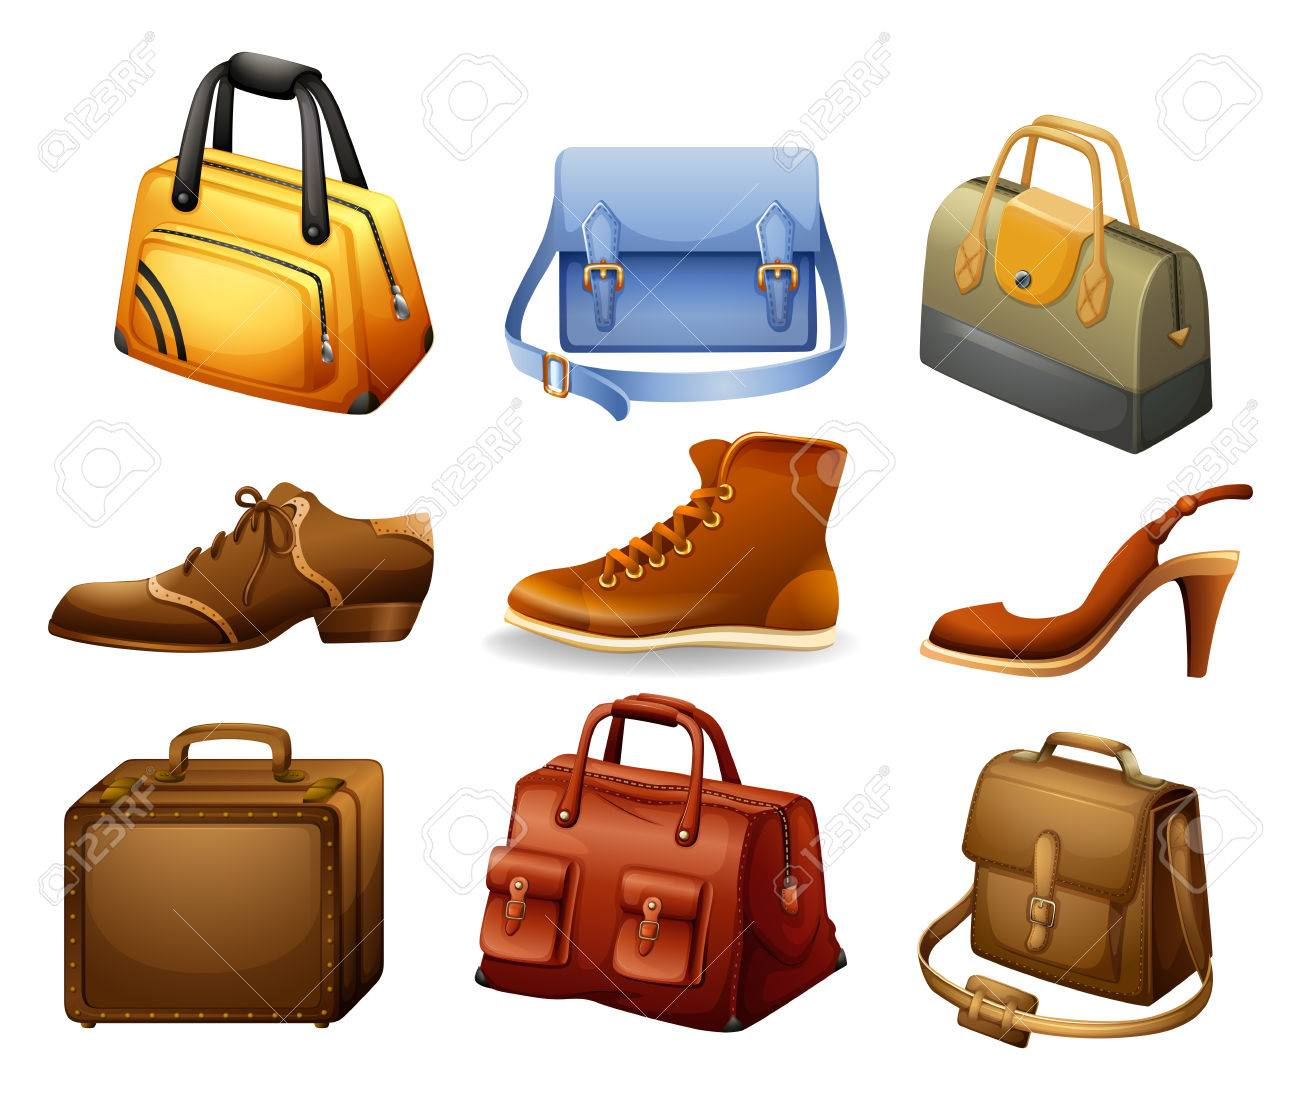 965abdb6f8bc Shoes and leather bags in modern design